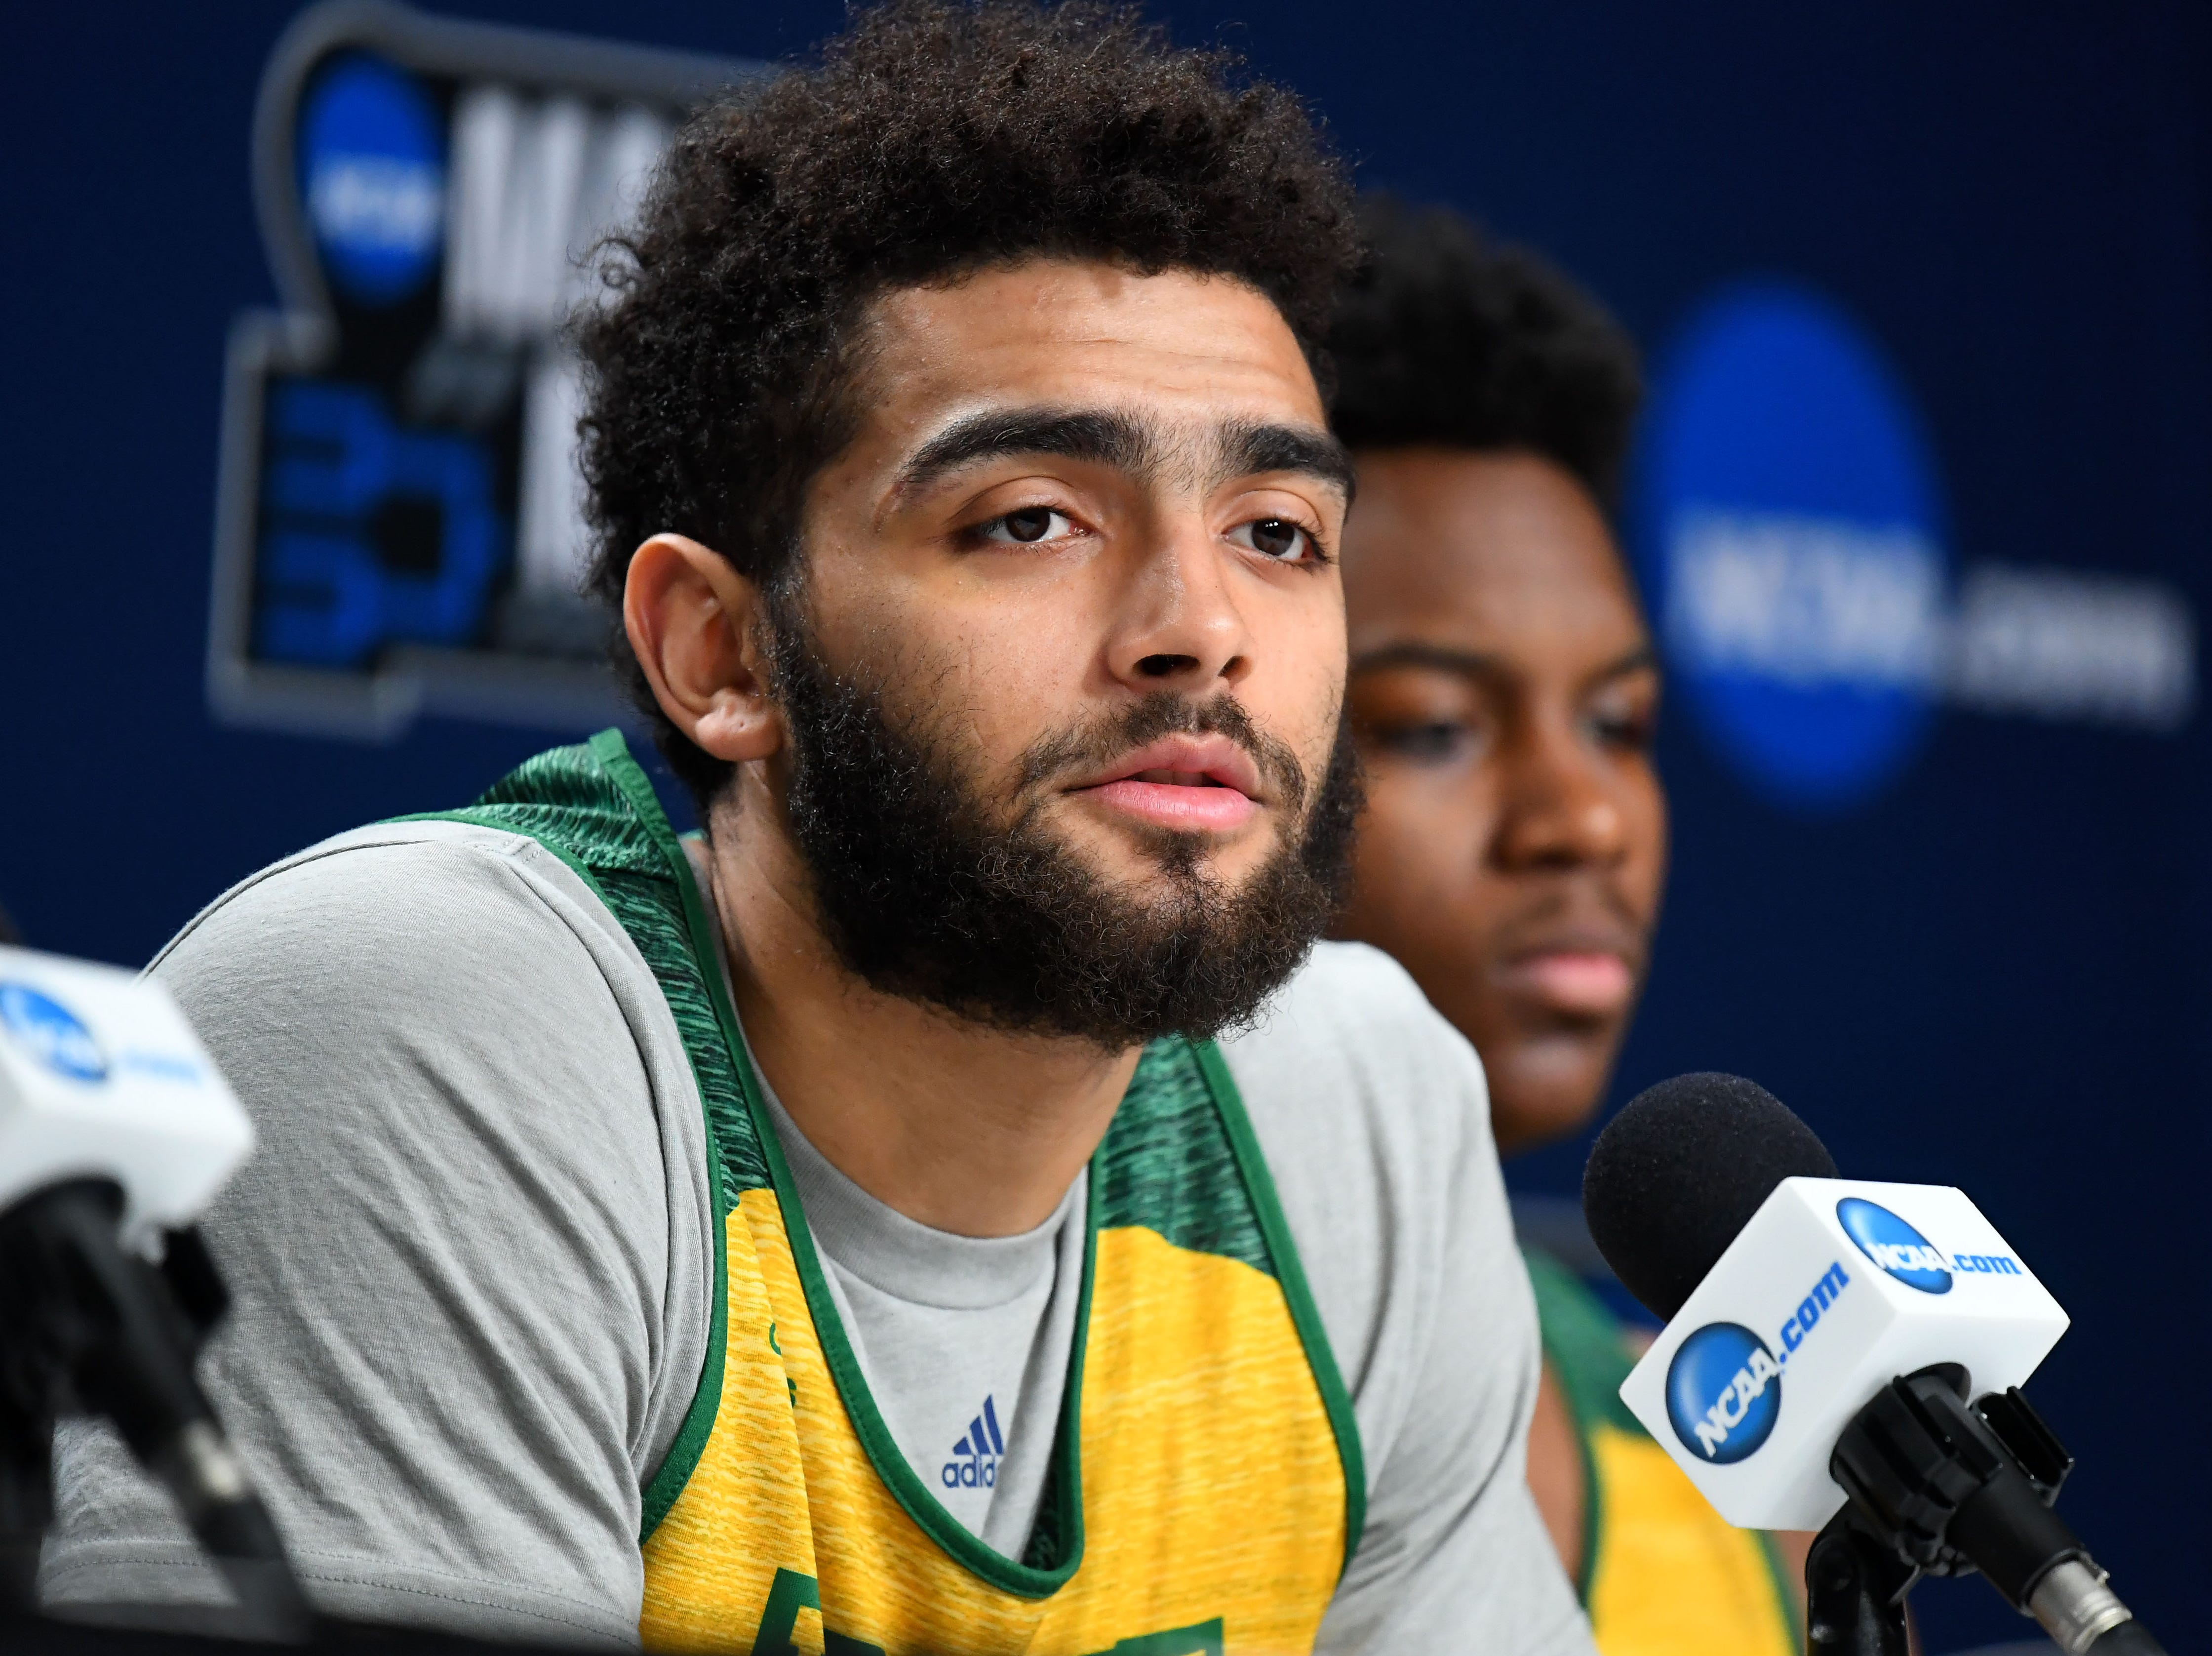 Mar 20, 2019; Hartford, CT, USA; Vermont Catamounts forward Anthony Lamb (3) speaks with media before a  practice in the first round of the 2019 NCAA Tournament at XL Center. Mandatory Credit: Robert Deutsch-USA TODAY Sports